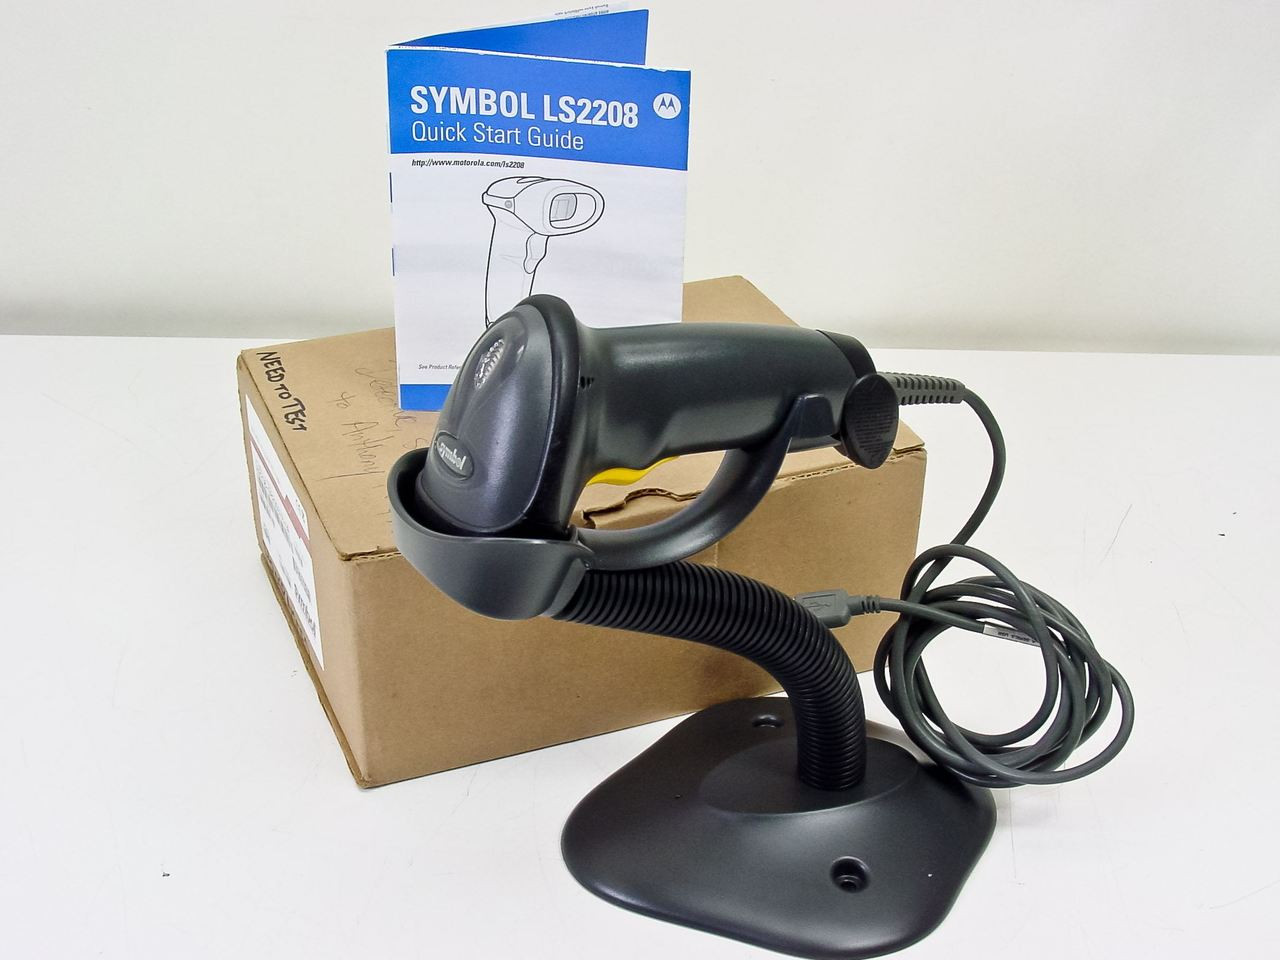 Symbol Technologies Ls2208 Sr20007 Barcode Scanner With Usb Cable Schematic Stand